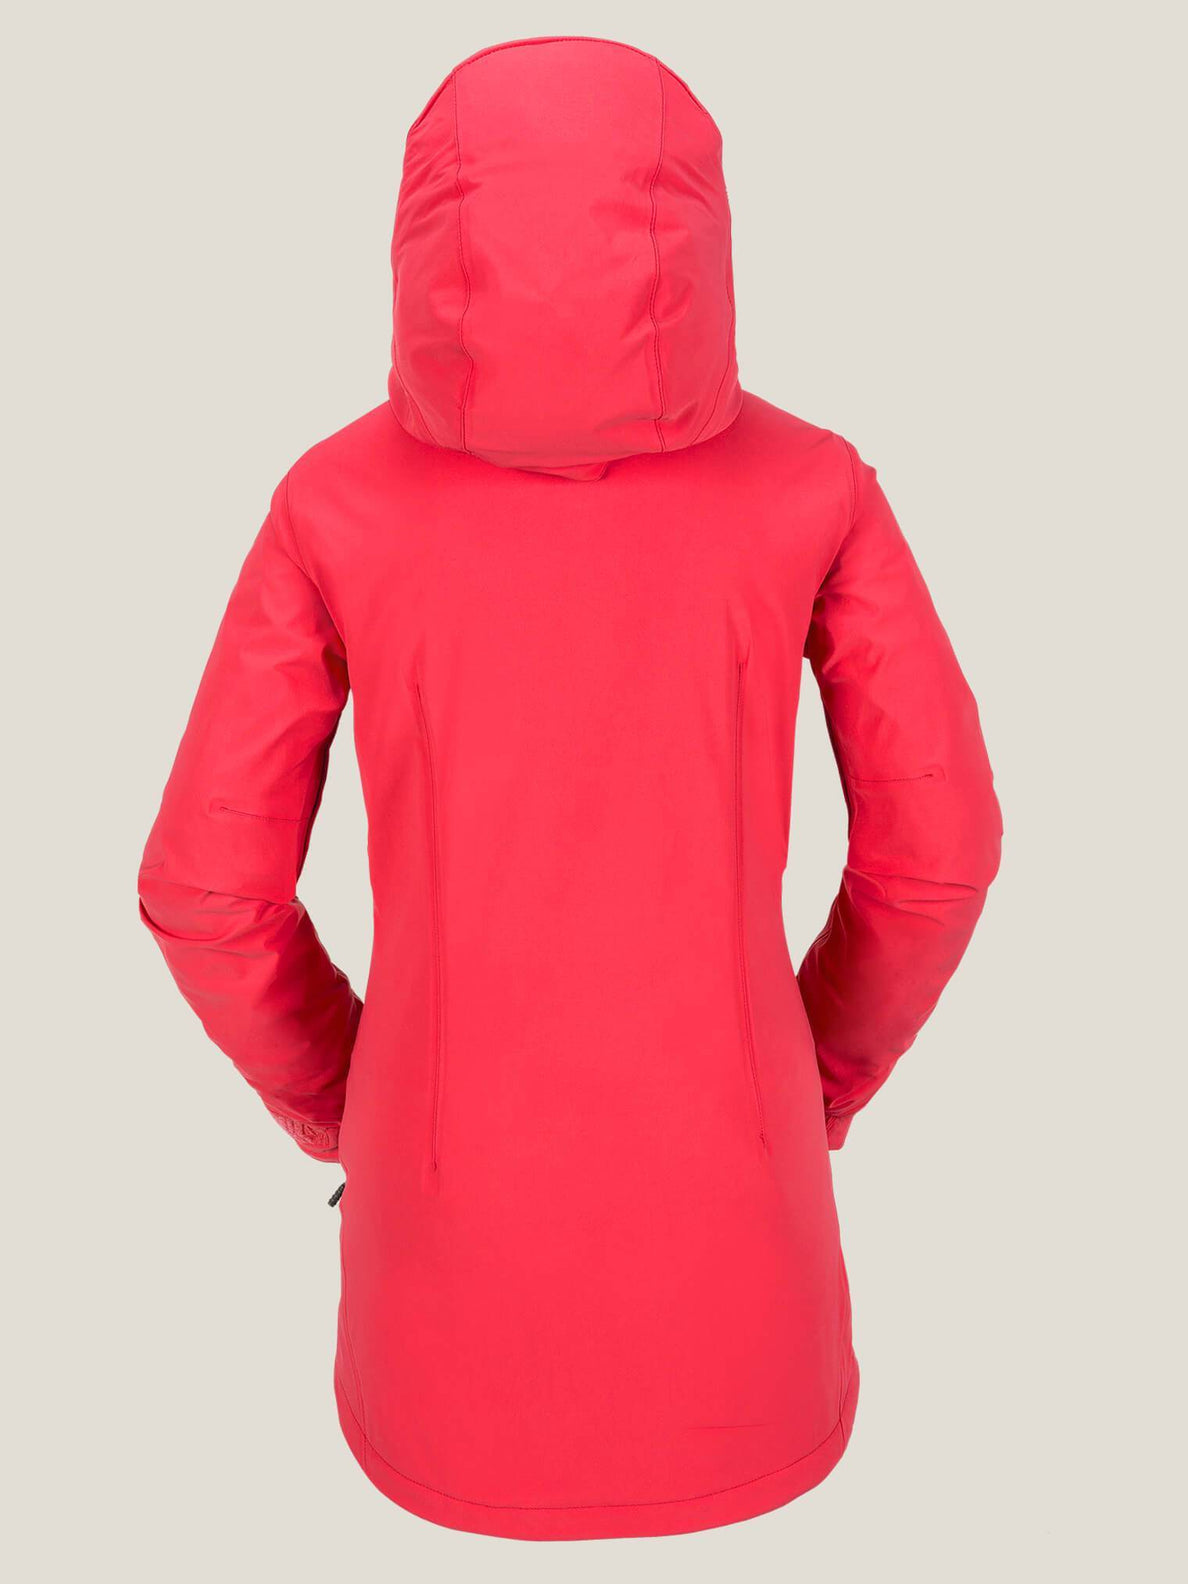 V Insulated Gore-tex® Stretch Jacket In Bright Rose, Back View